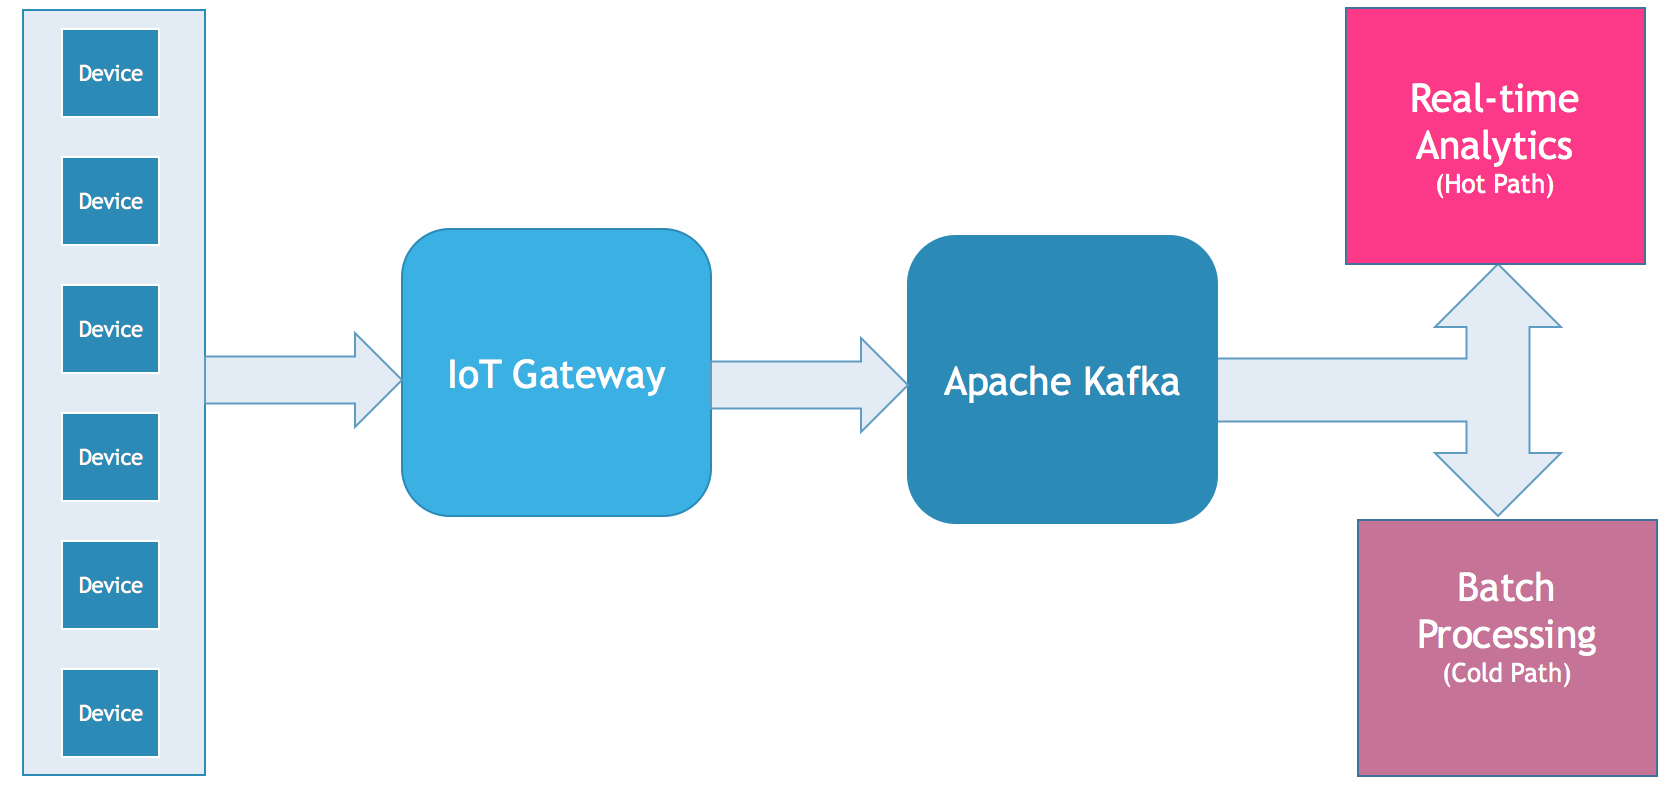 Apache Kafka: The Cornerstone of an Internet-of-Things Data